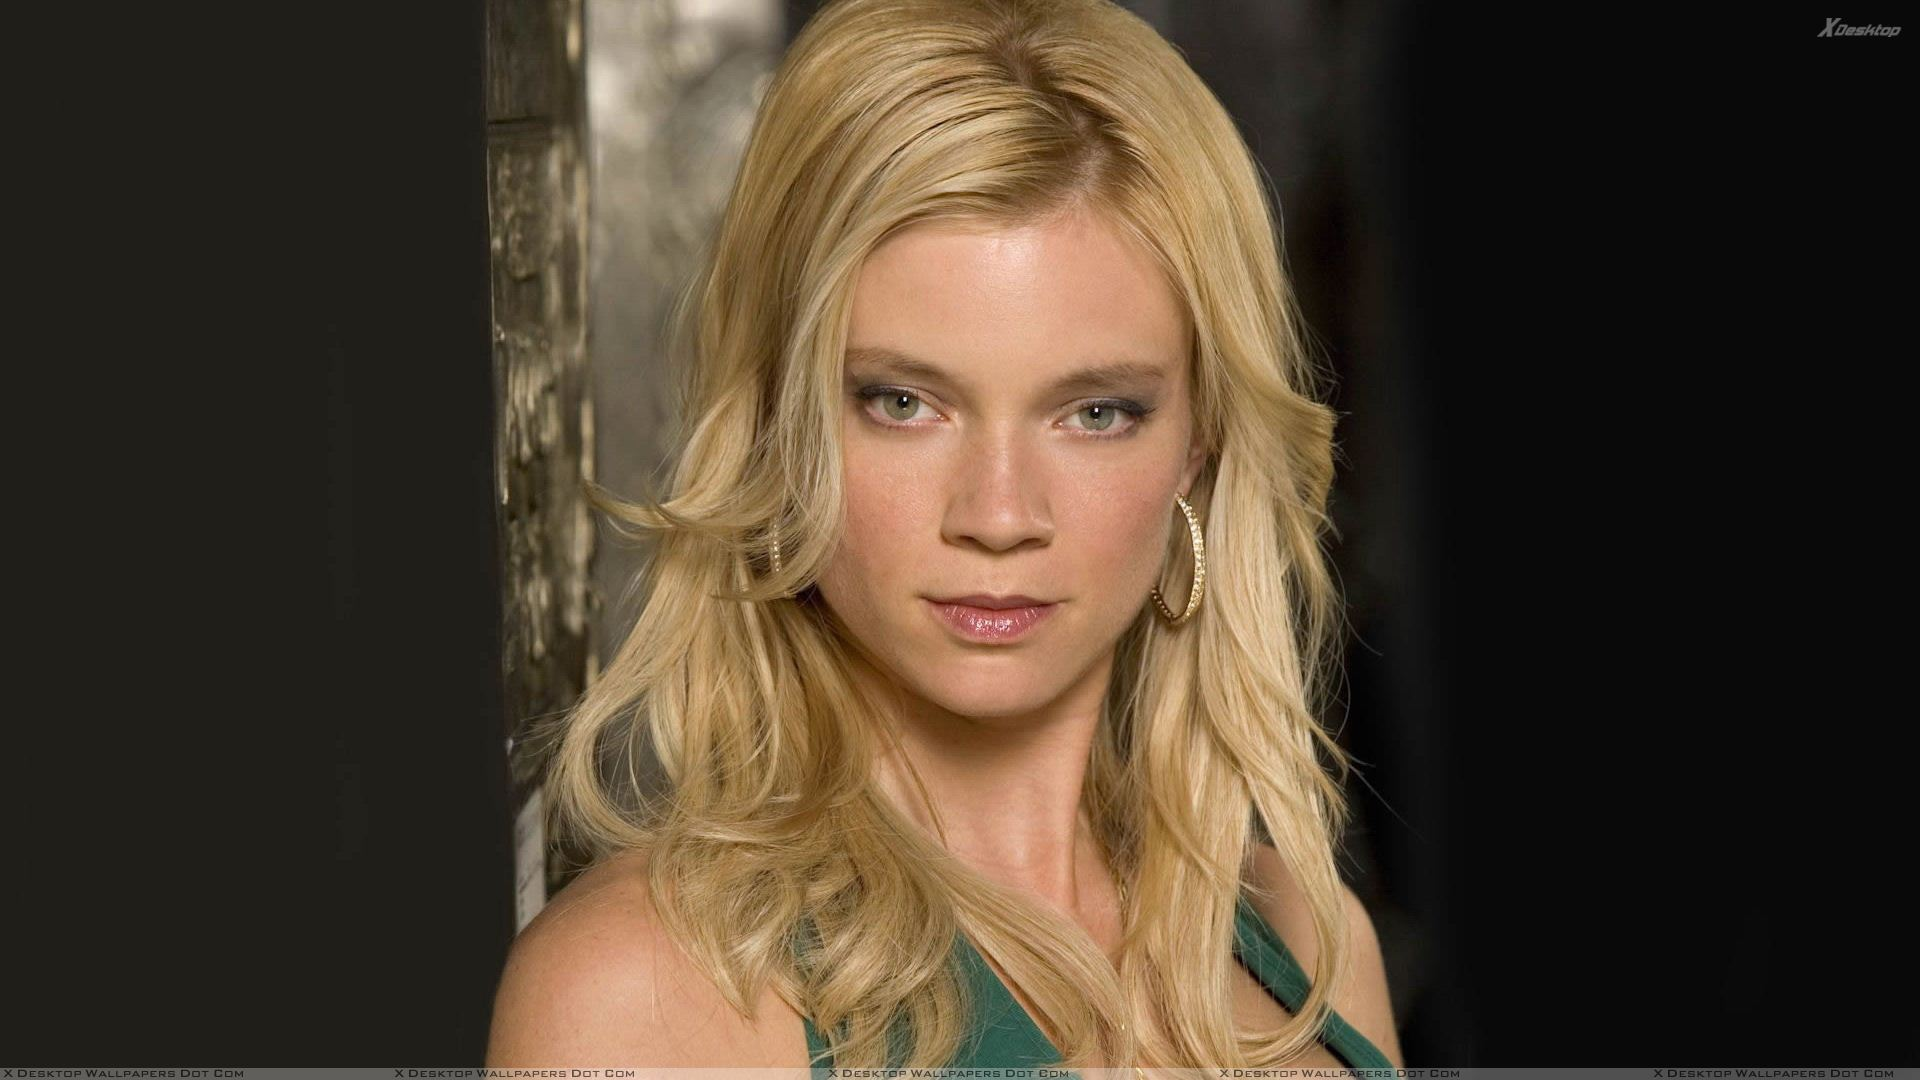 Amy Smart Looking At Camera N Golden Hairs Photoshoot